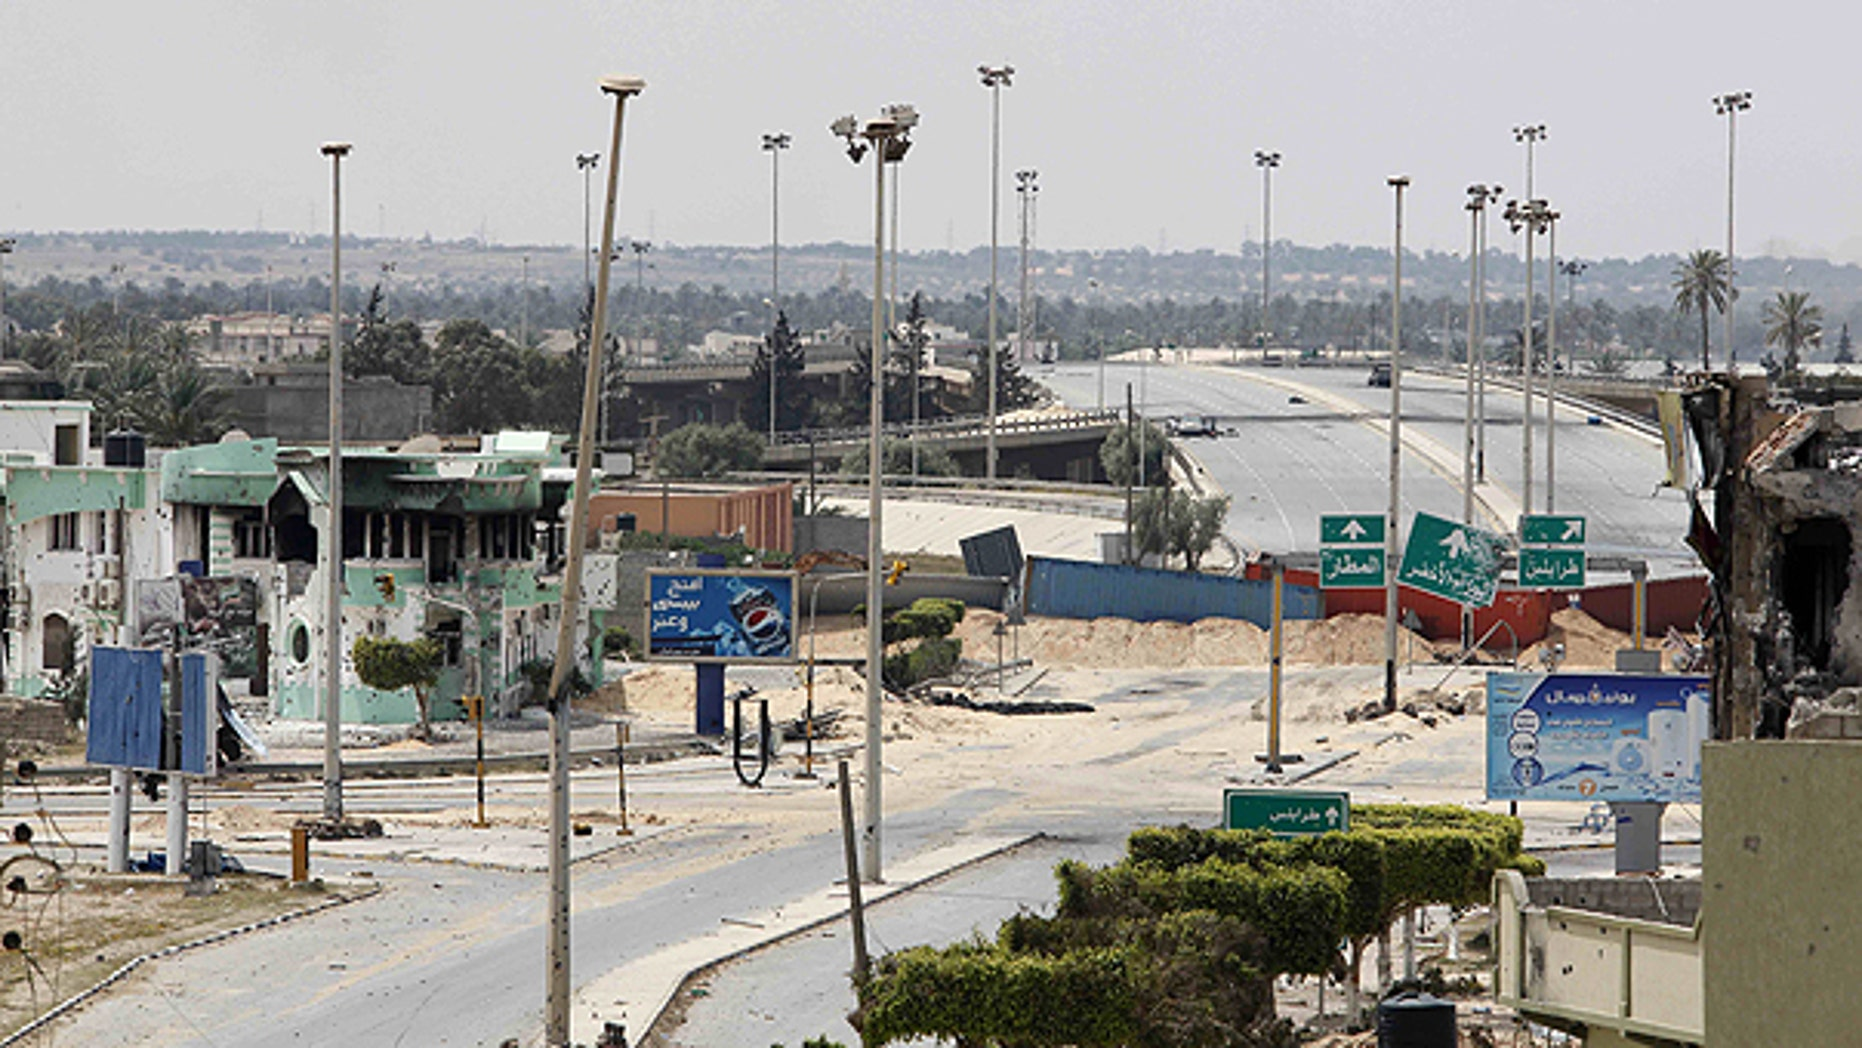 April 21: A general view of Misrata, where Libyan rebel fighters are engaged in house-to-house fighting with pro-Qaddafi troops in the besieged city, the main rebel holdout in Gadhafi's territory.